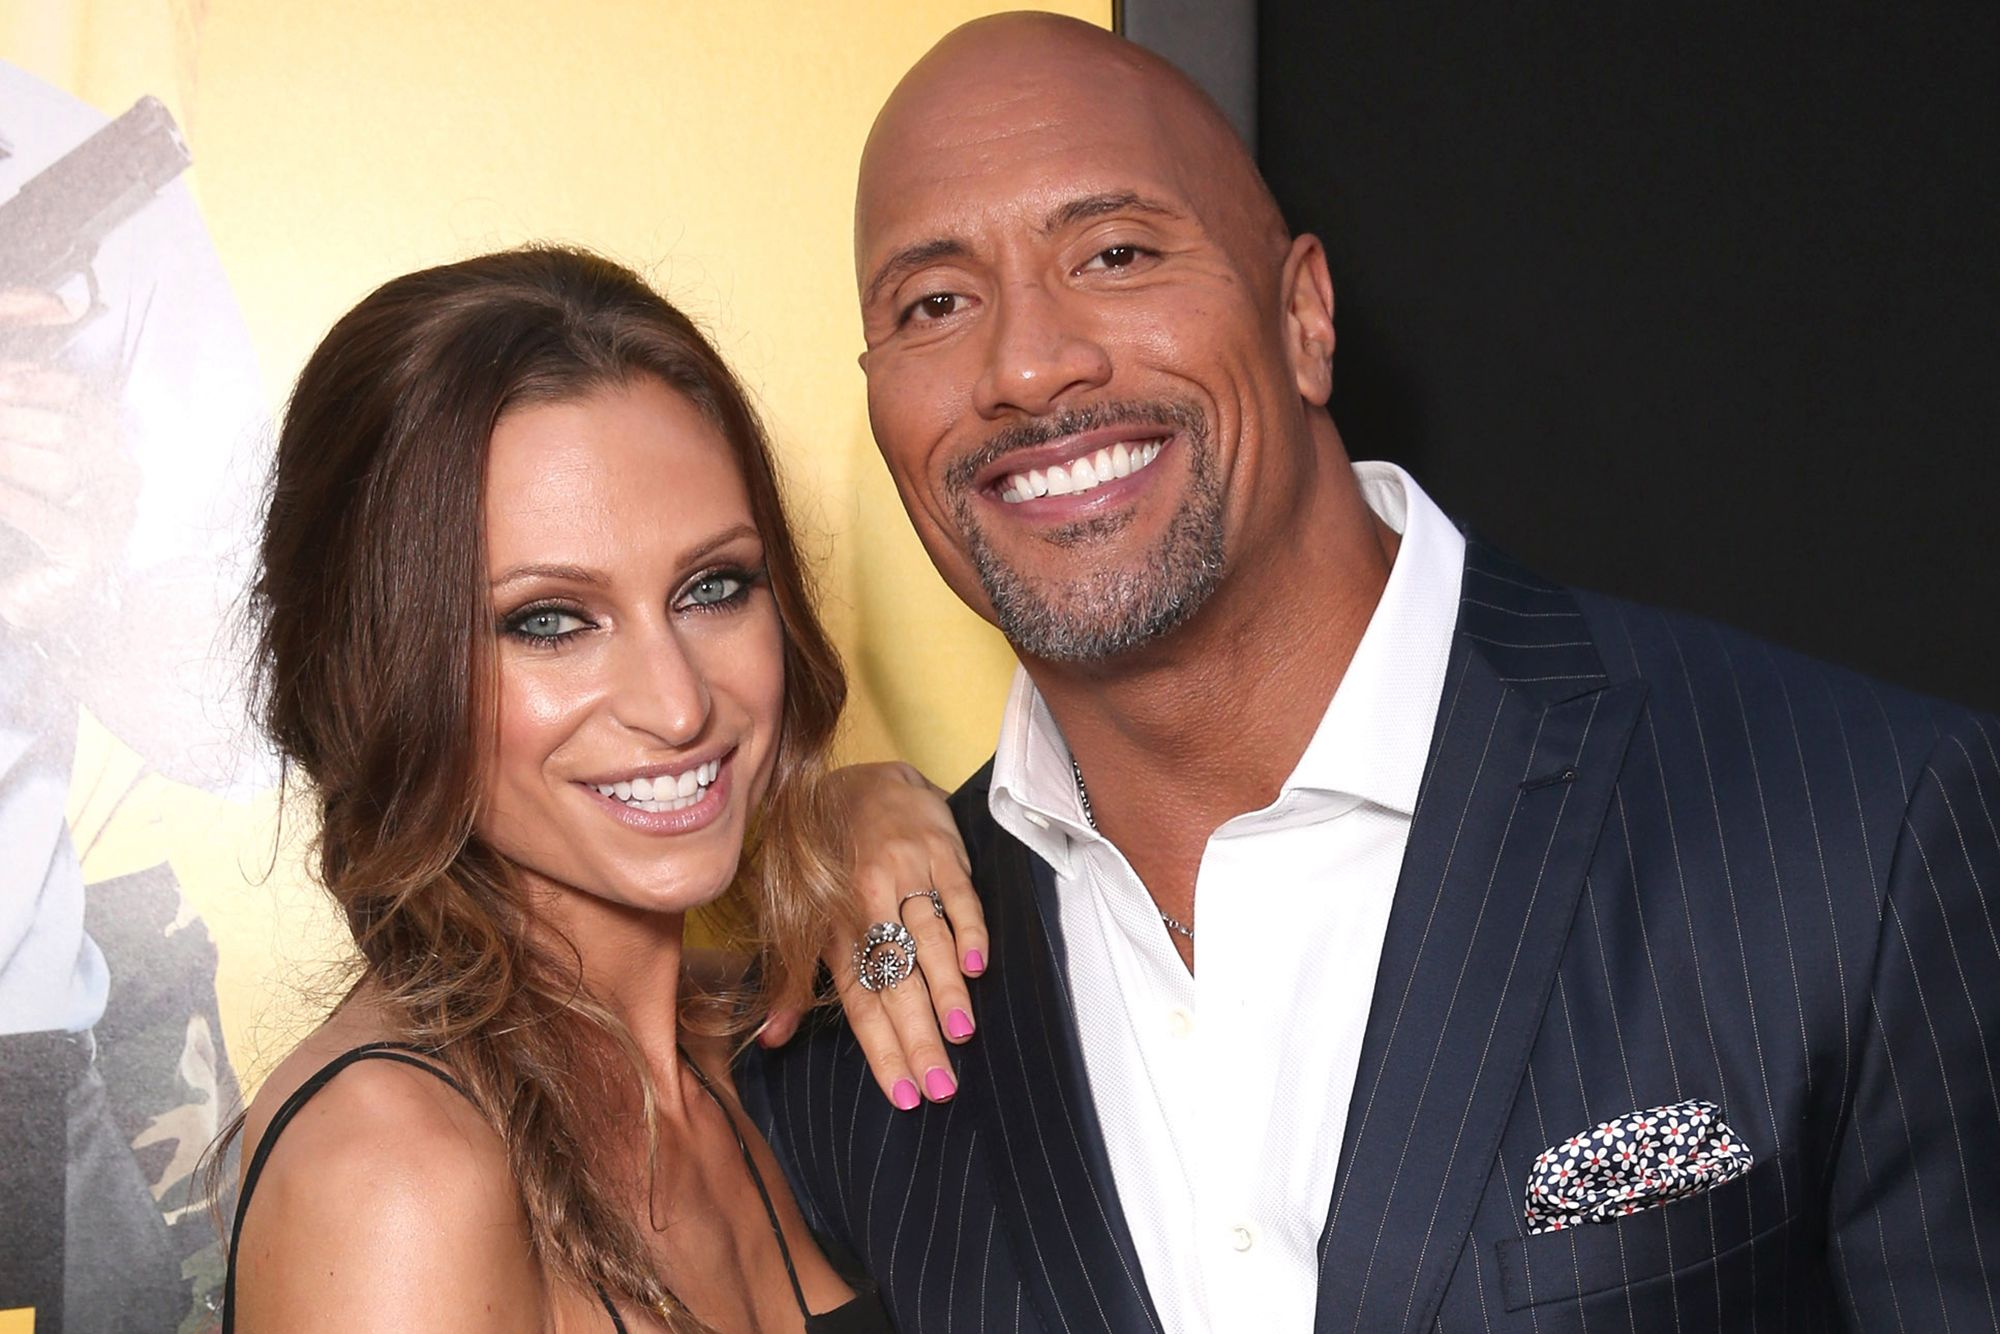 Dwayne 'The Rock' Johnson Pays Sweet Tribute To Wife Lauren Hashian On Her Birthday